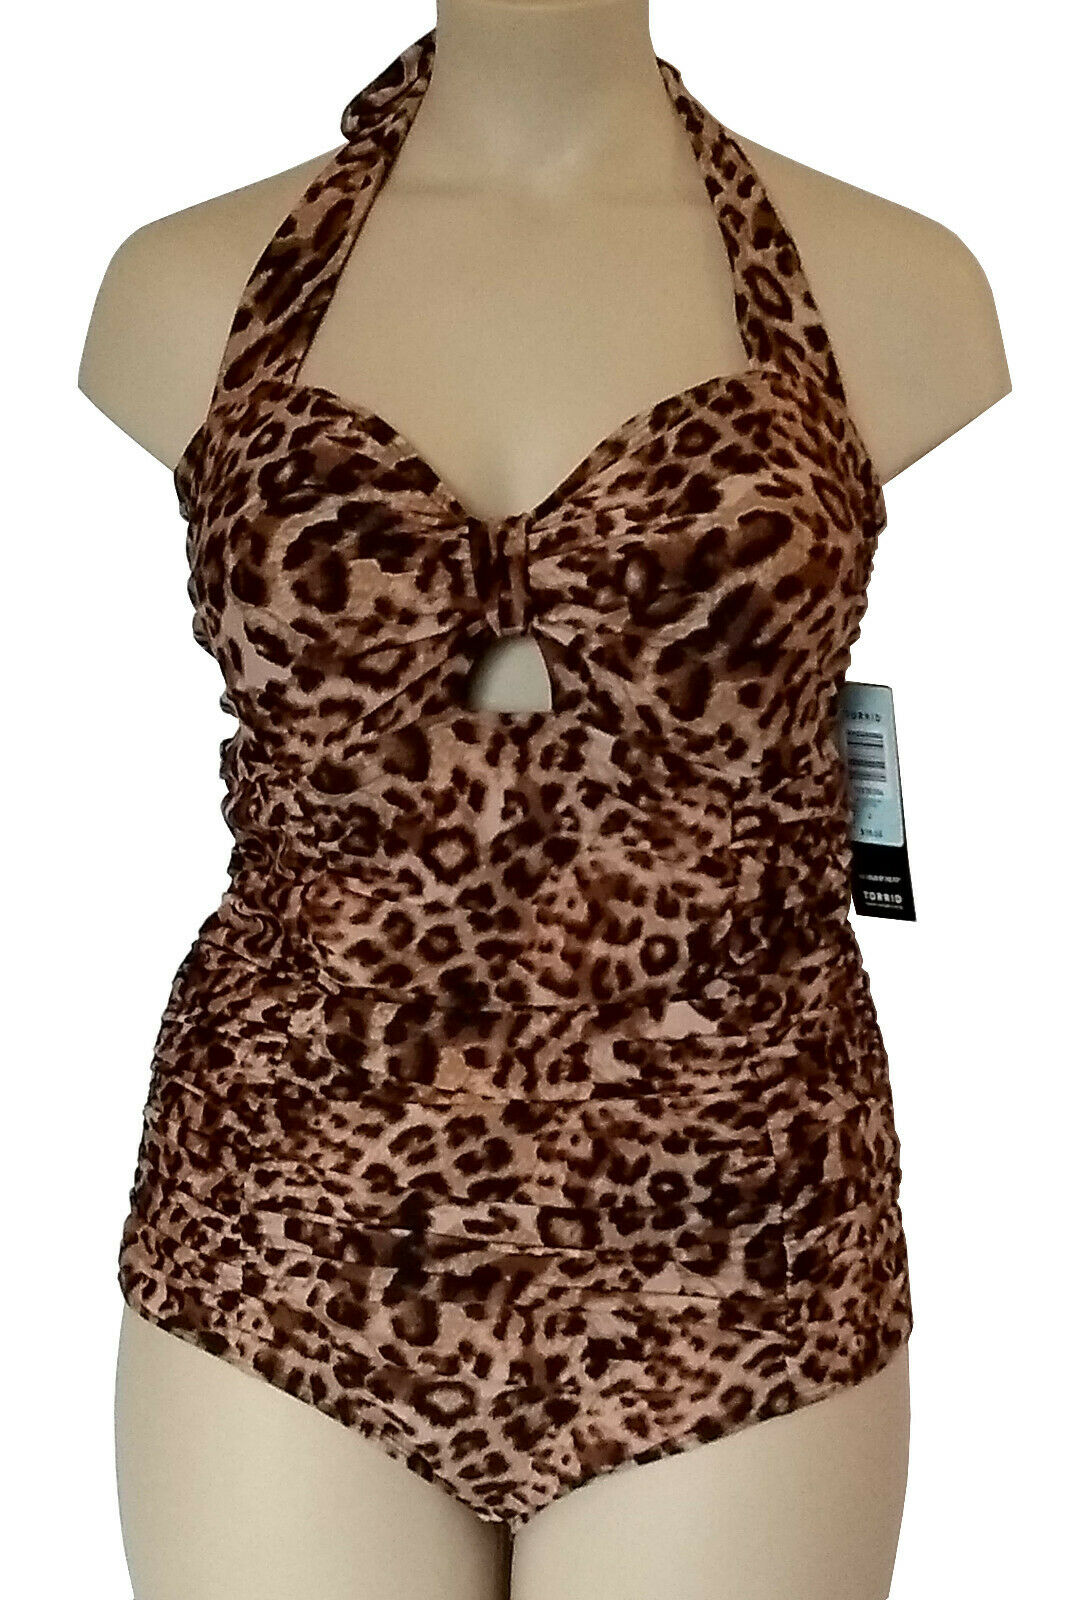 New Trend Leopard Tummy Control Swimsuit sizes 14-28 multiway straps C DD cup